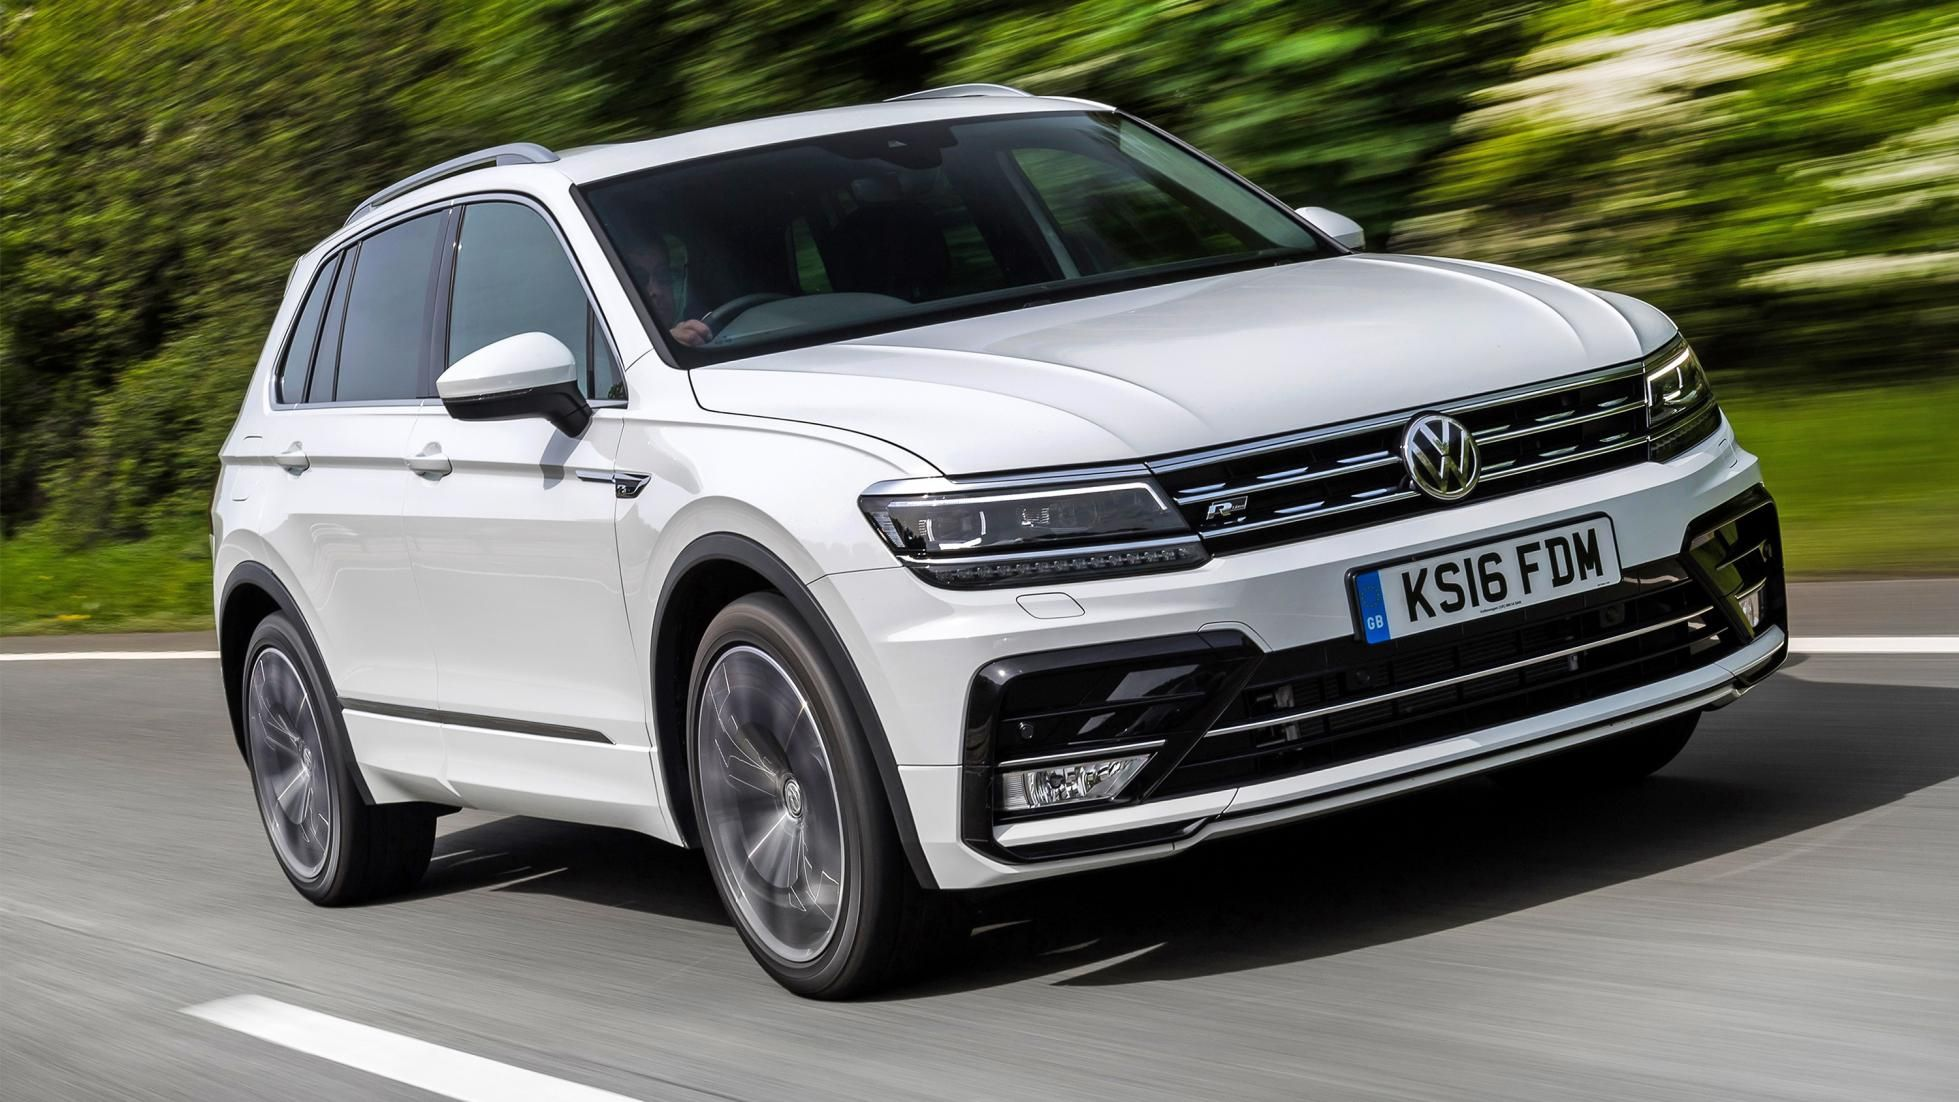 2020 Volkswagen Tiguan Review Top Gear In 2020 Volkswagen Cc Car Volkswagen Suv